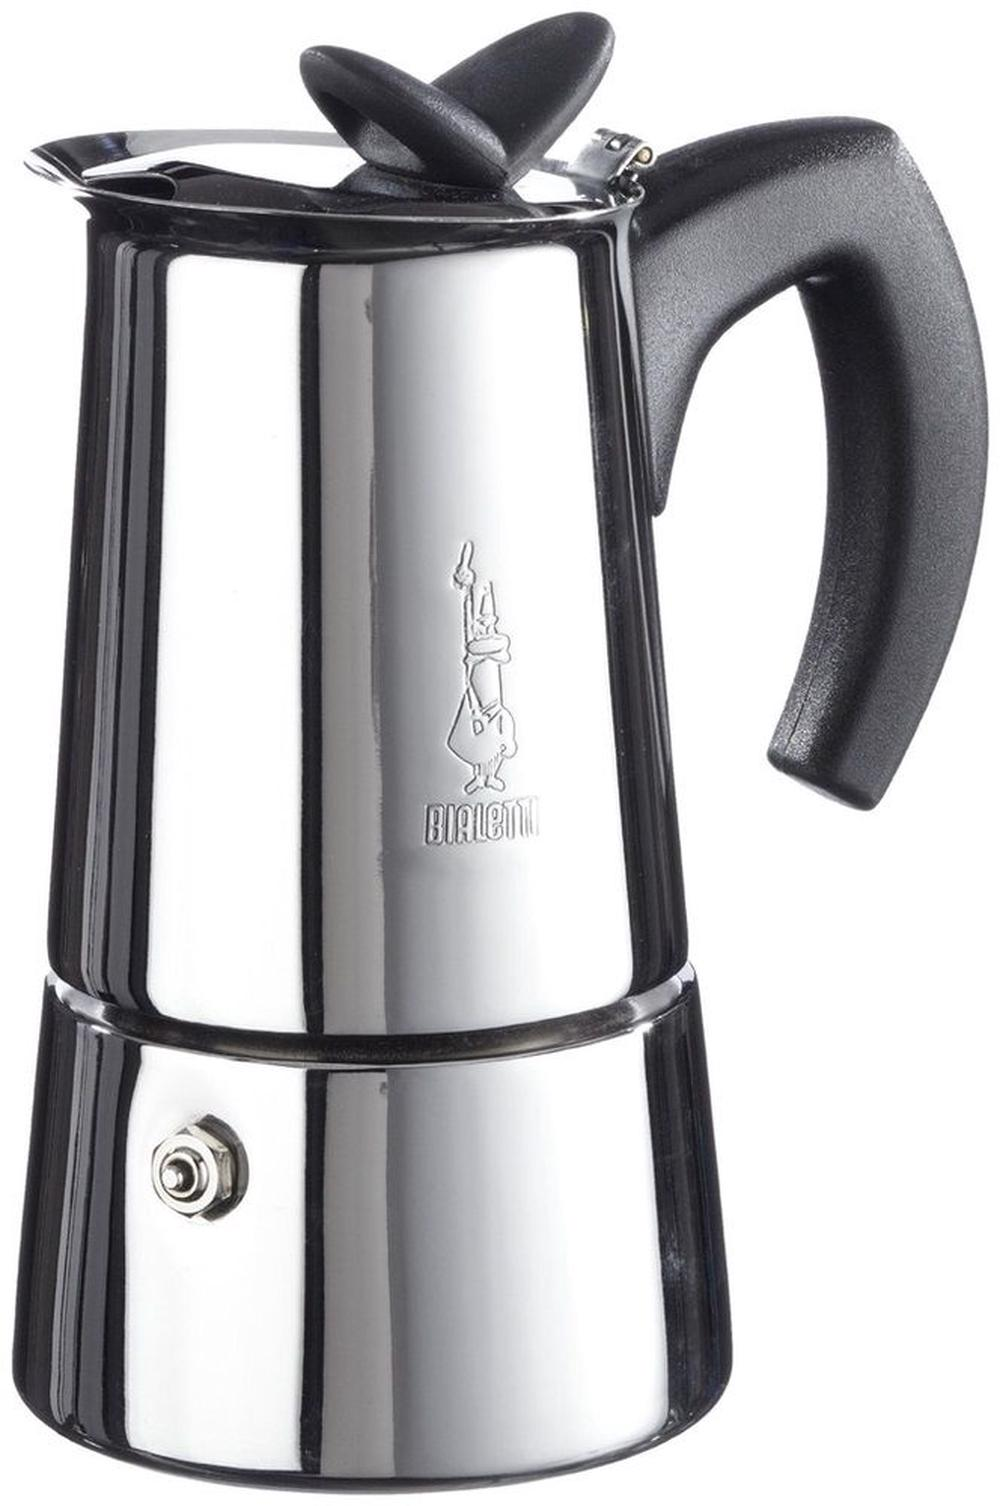 Bialetti Musa Induction Espresso Maker - 10 Cups